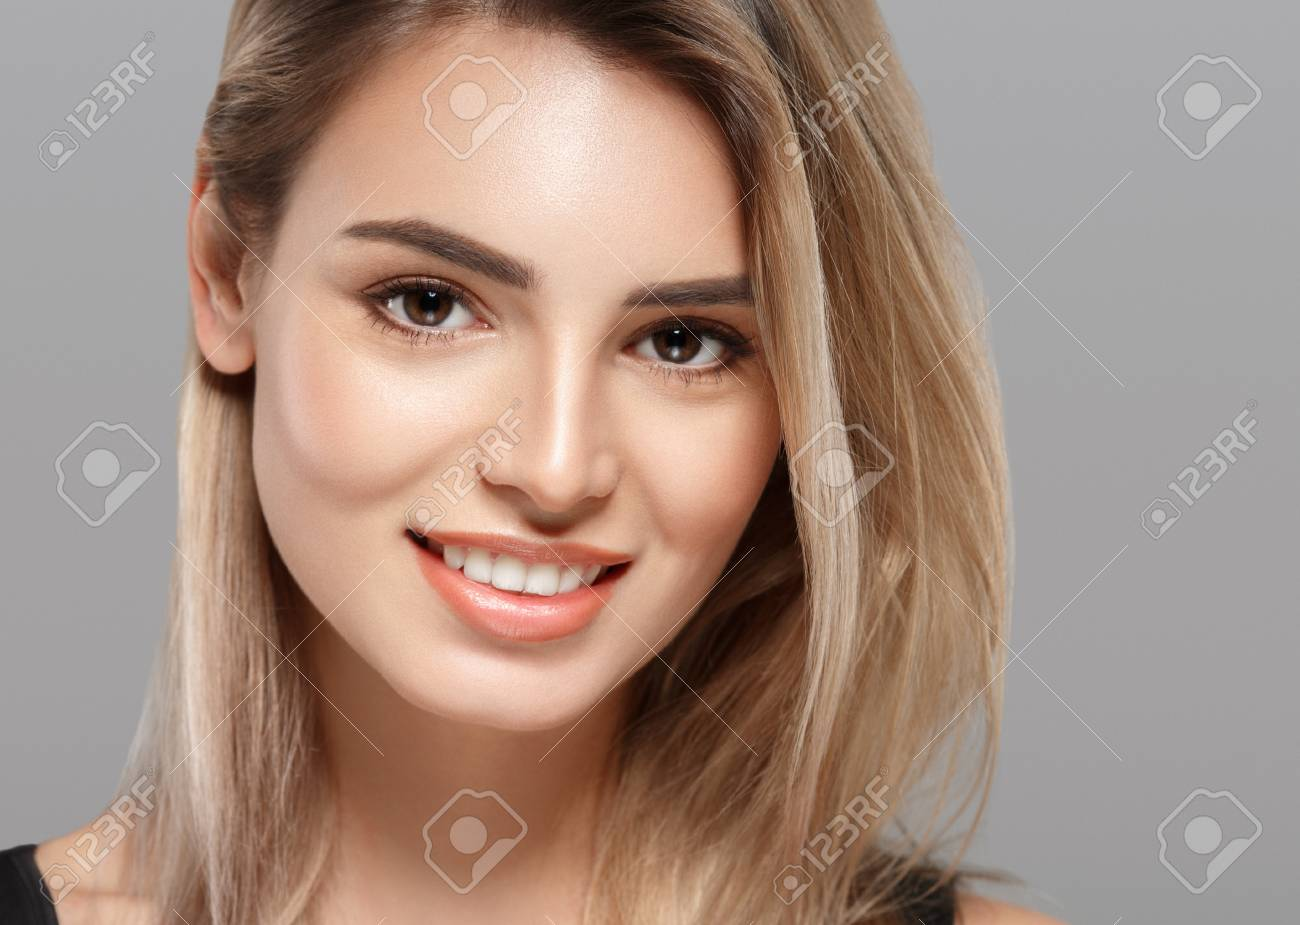 Beautiful young woman portrait smiling posing attractive blond with flying hair on gray background. Studio shot. - 65872850